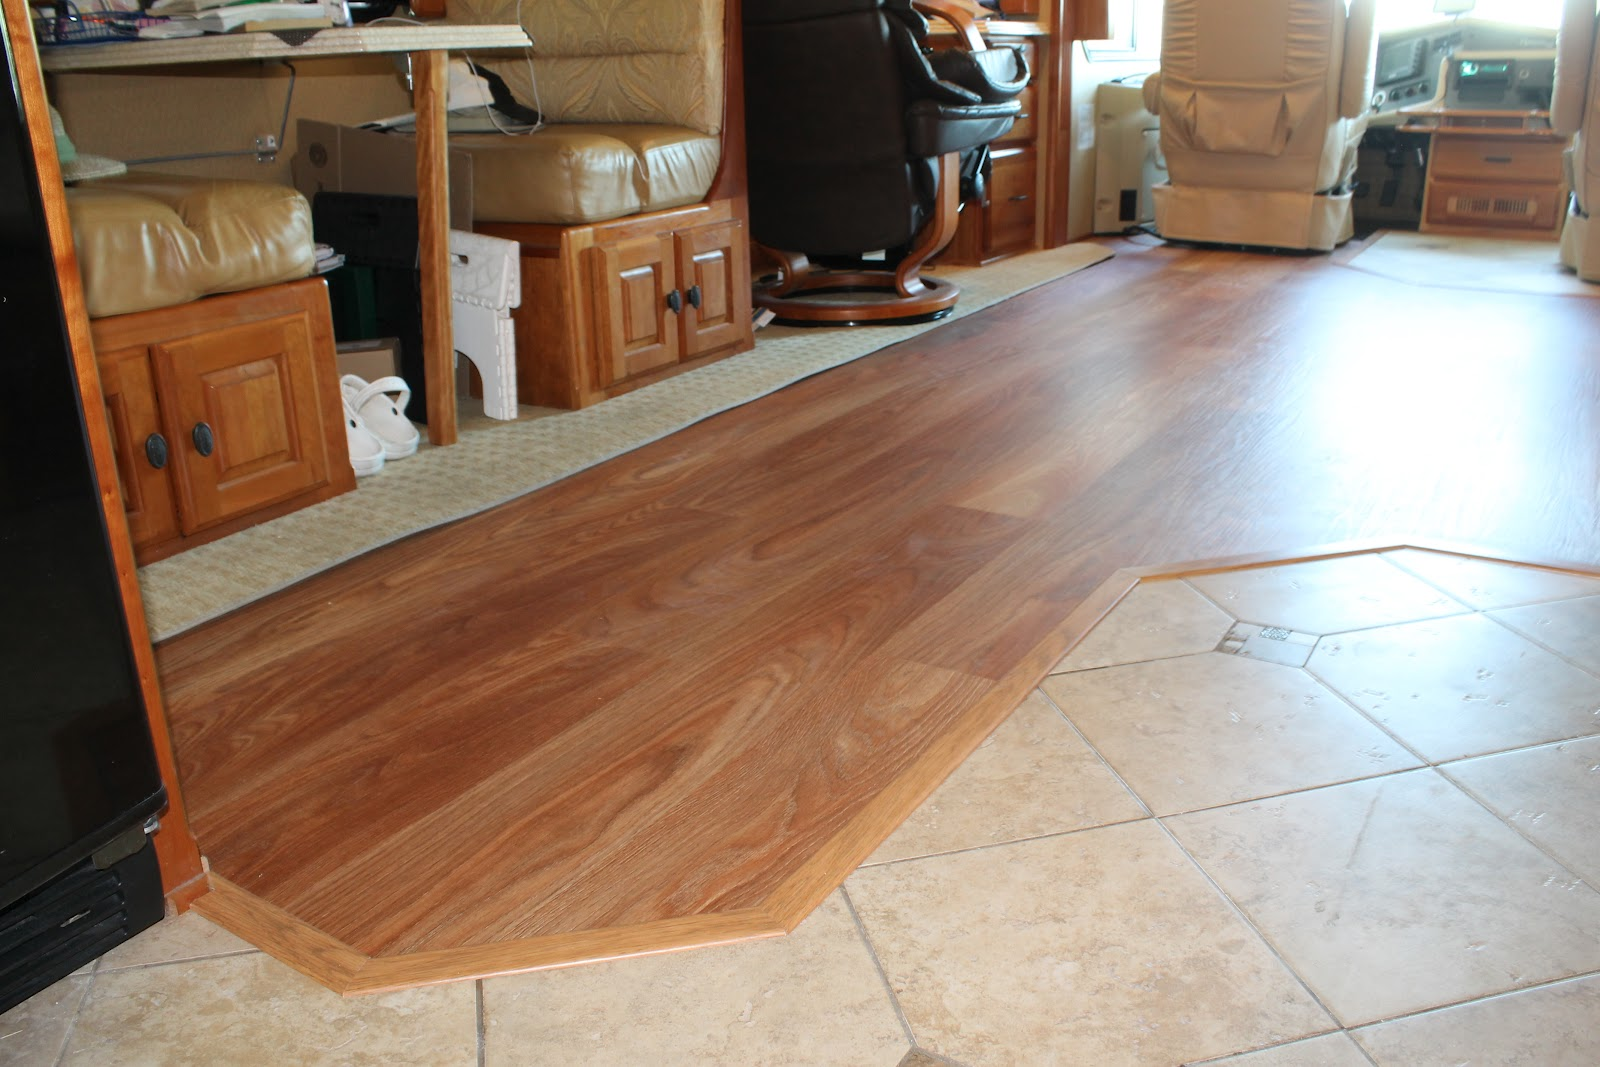 ... the 80's: 2005 Monaco Dynasty RV Remodel - Oak Laminate Wood Flooring